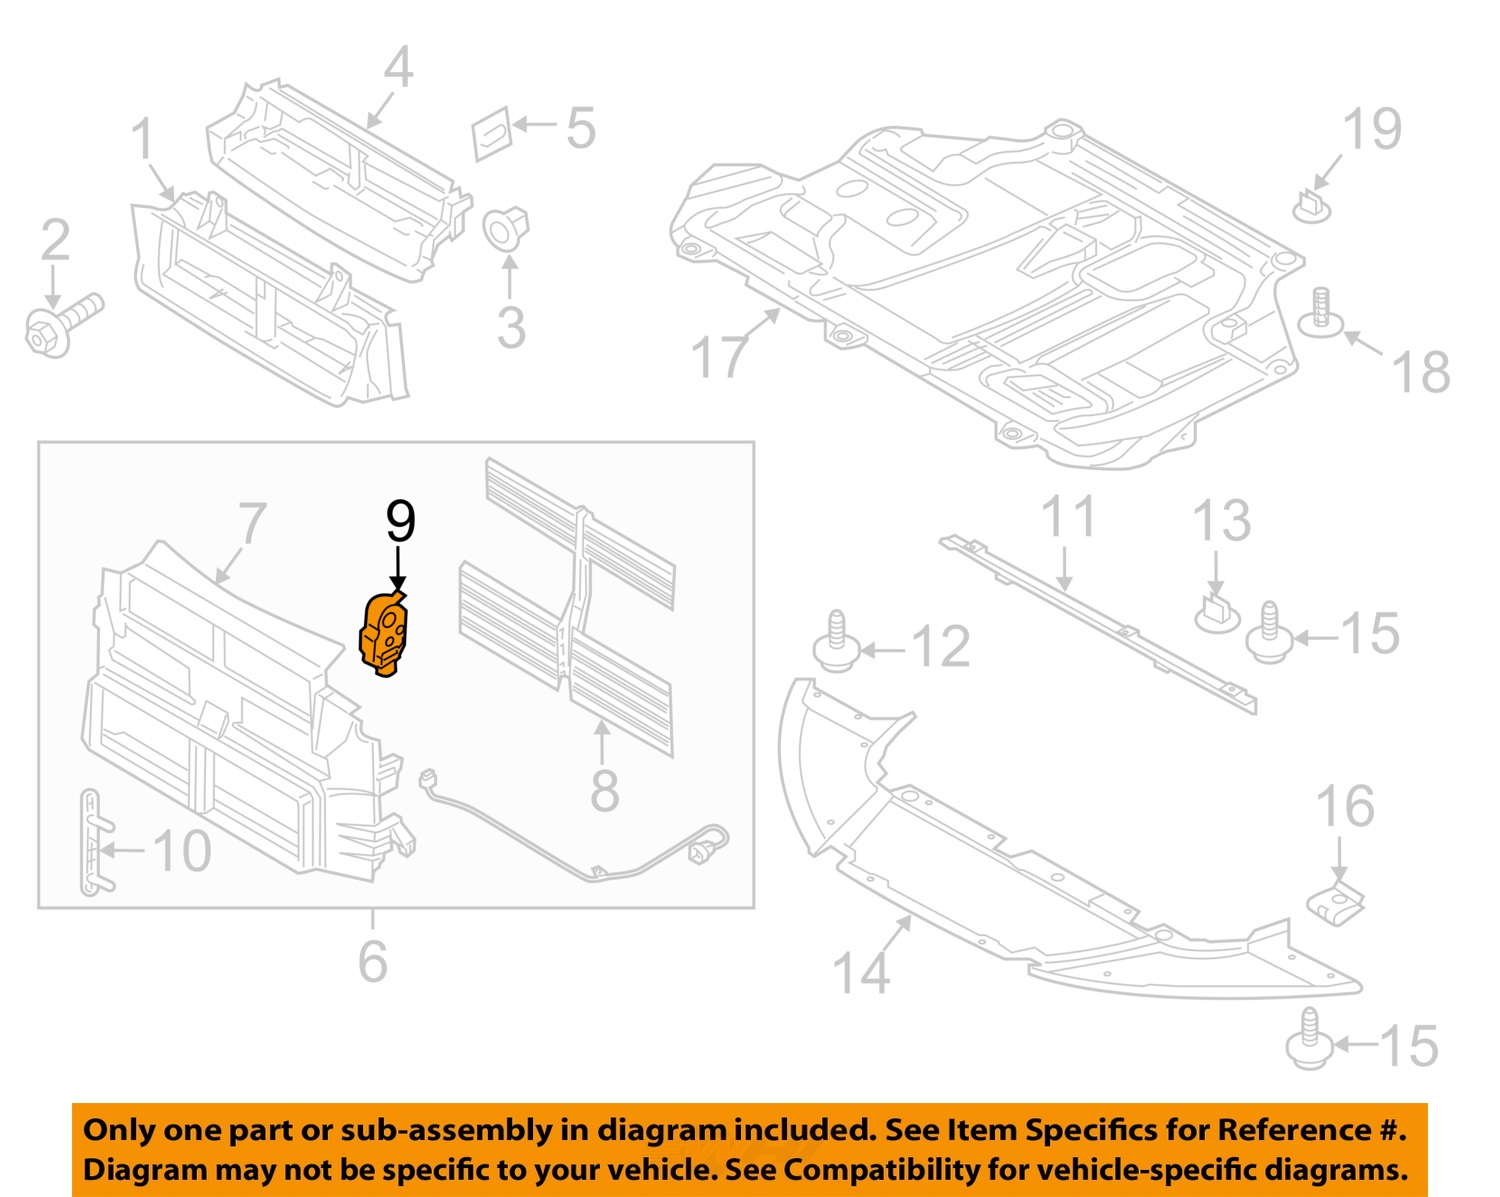 Sell Ford Oem Splash Shields Radiator Support Actuator Cm5z10884a 3415 Wiring Diagram